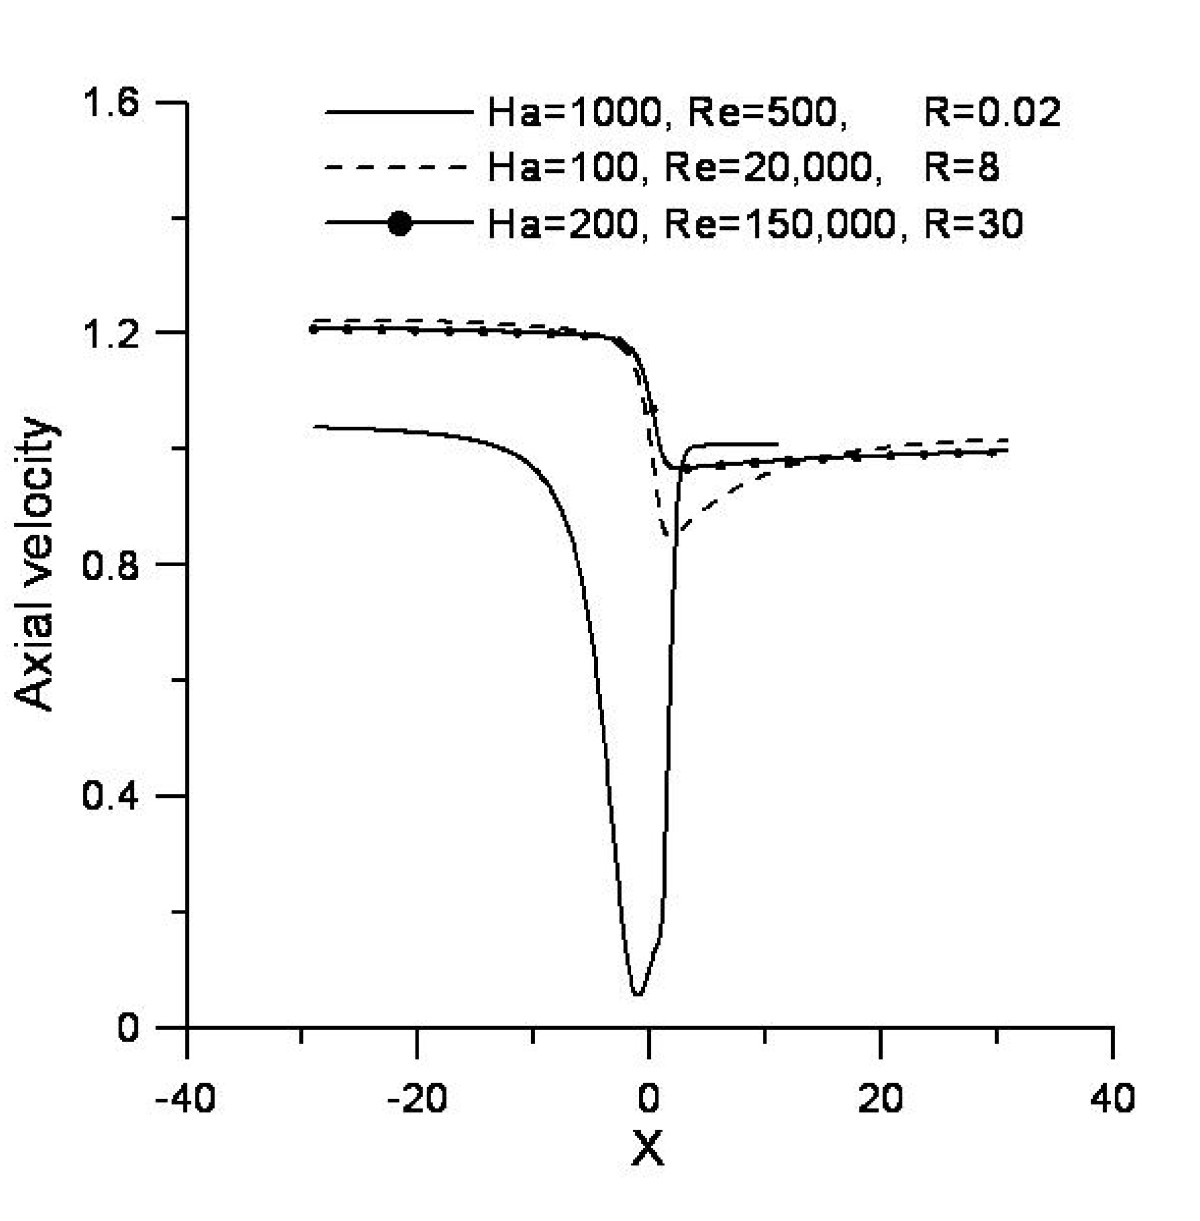 http://static-content.springer.com/image/art%3A10.1186%2F1754-0429-3-3/MediaObjects/13067_2010_Article_26_Fig4_HTML.jpg